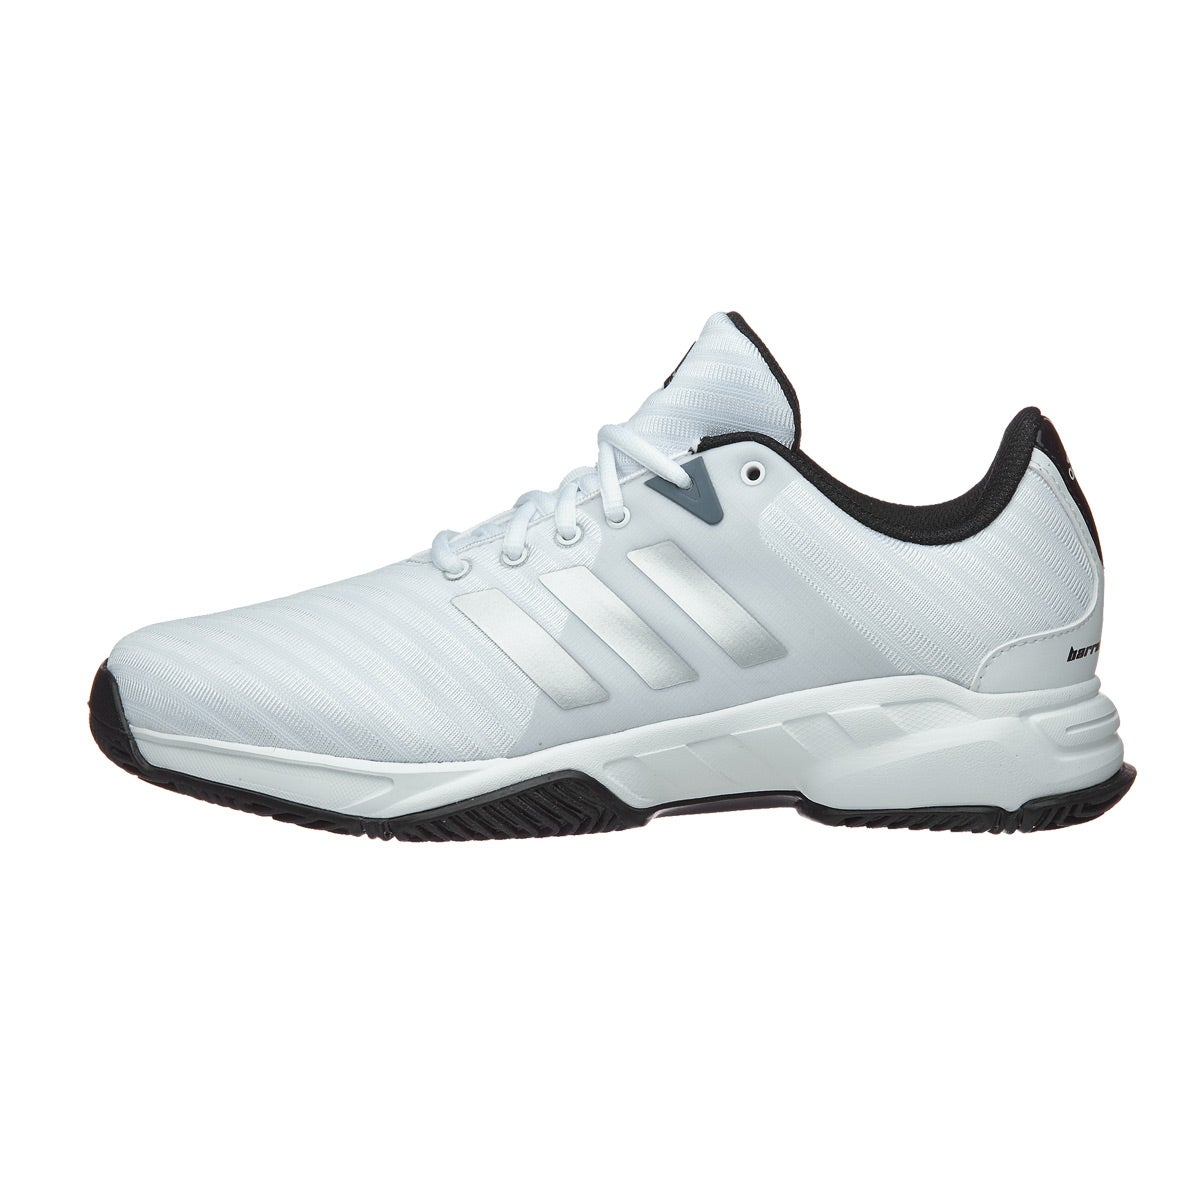 adidas Barricade Court 3 Wide White/Silver Men's Shoes 360 ...